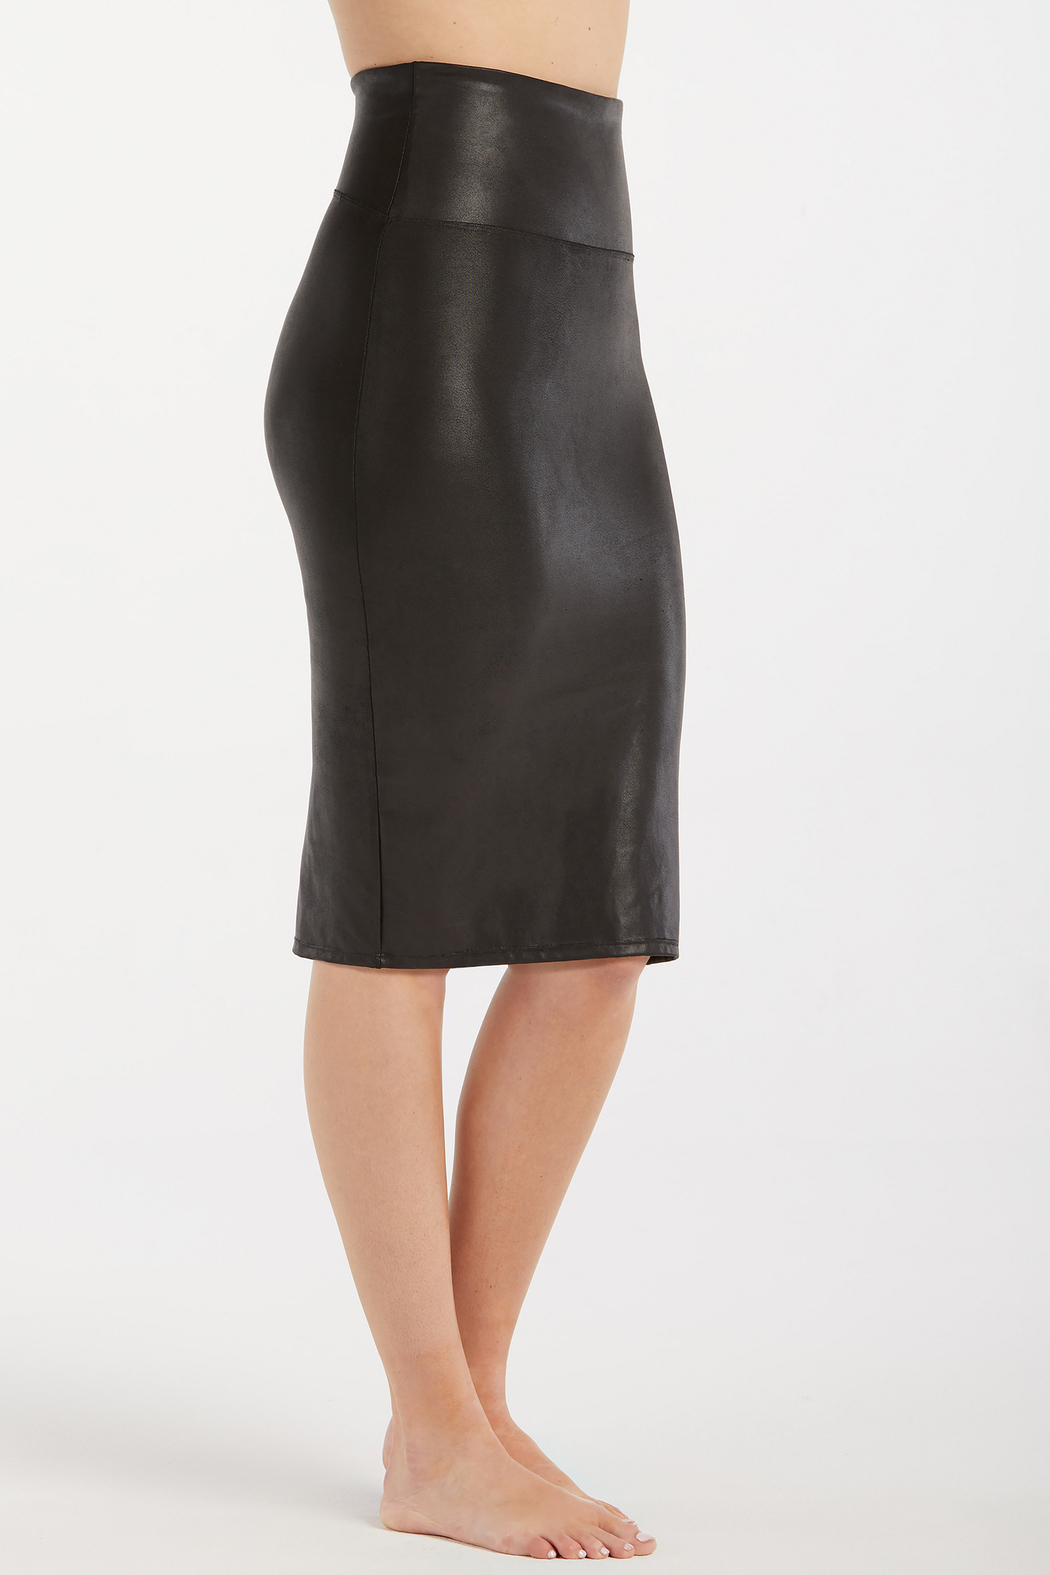 Spanx Faux Leather Pencil Skirt - Front Full Image